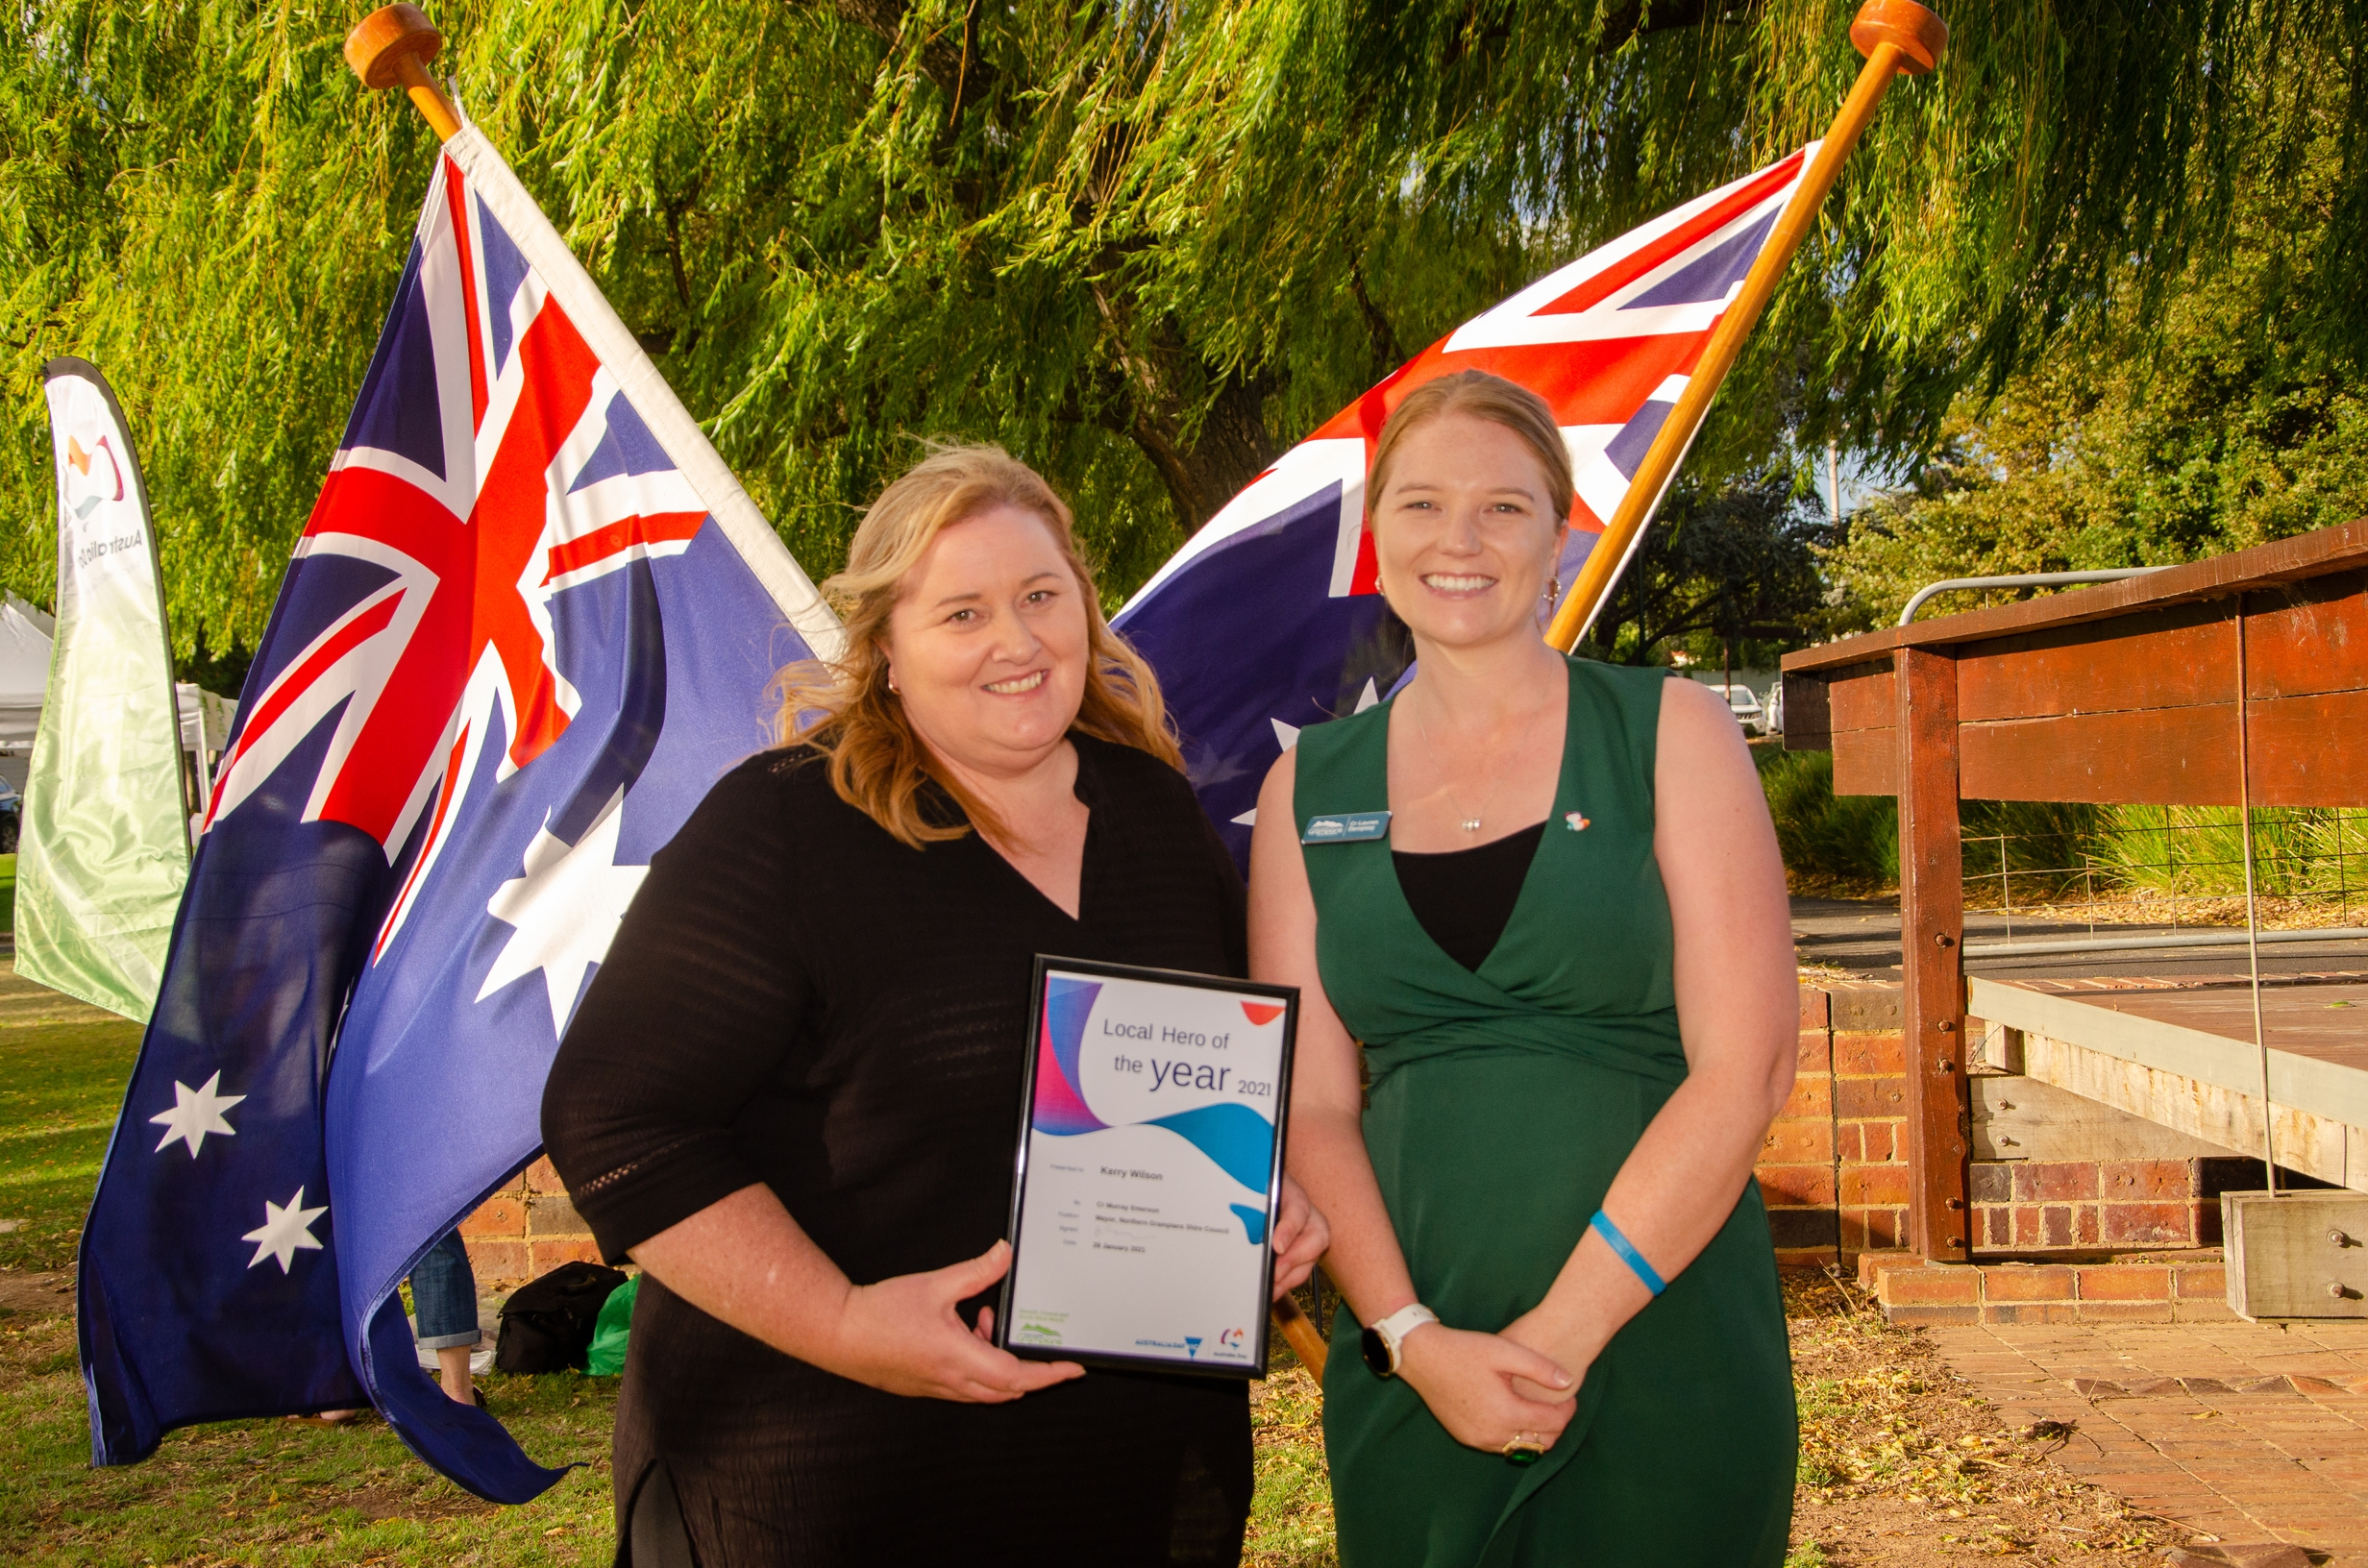 Stawell Local Hero-Kerry Wilson